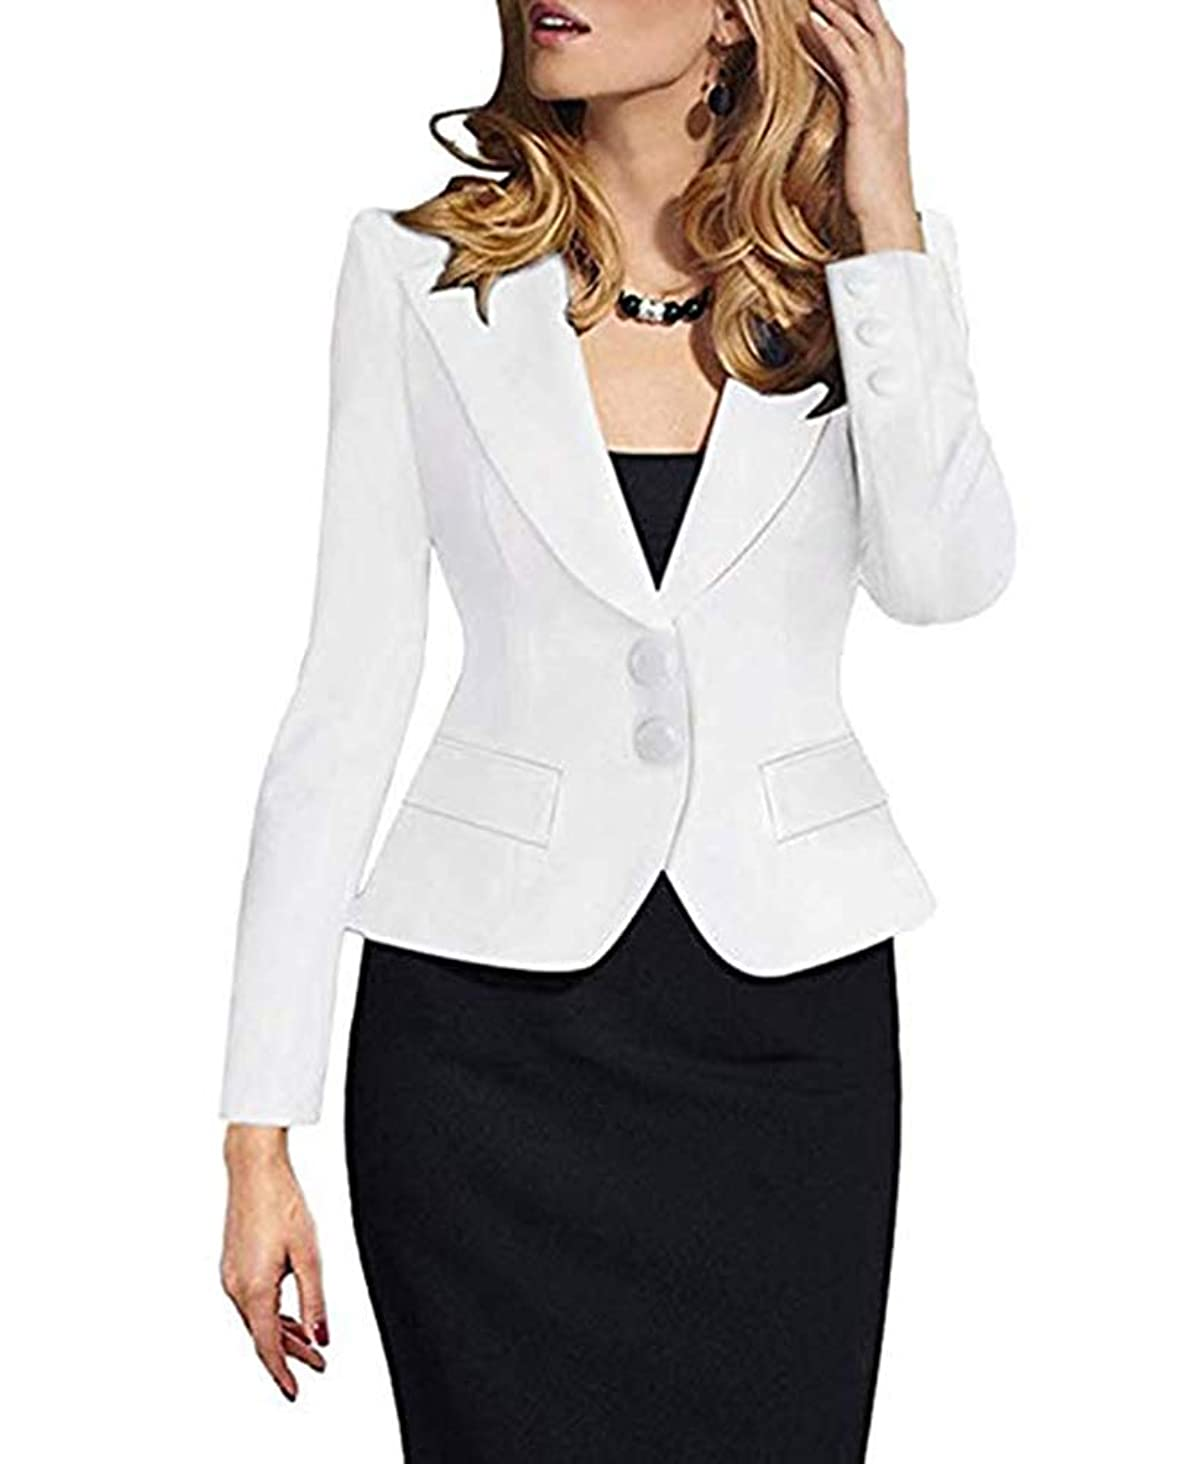 SEBOWEL Women's Formal Two Button Slim Fitted Office Work Blazers Jackets Suits Plus Size S-3X